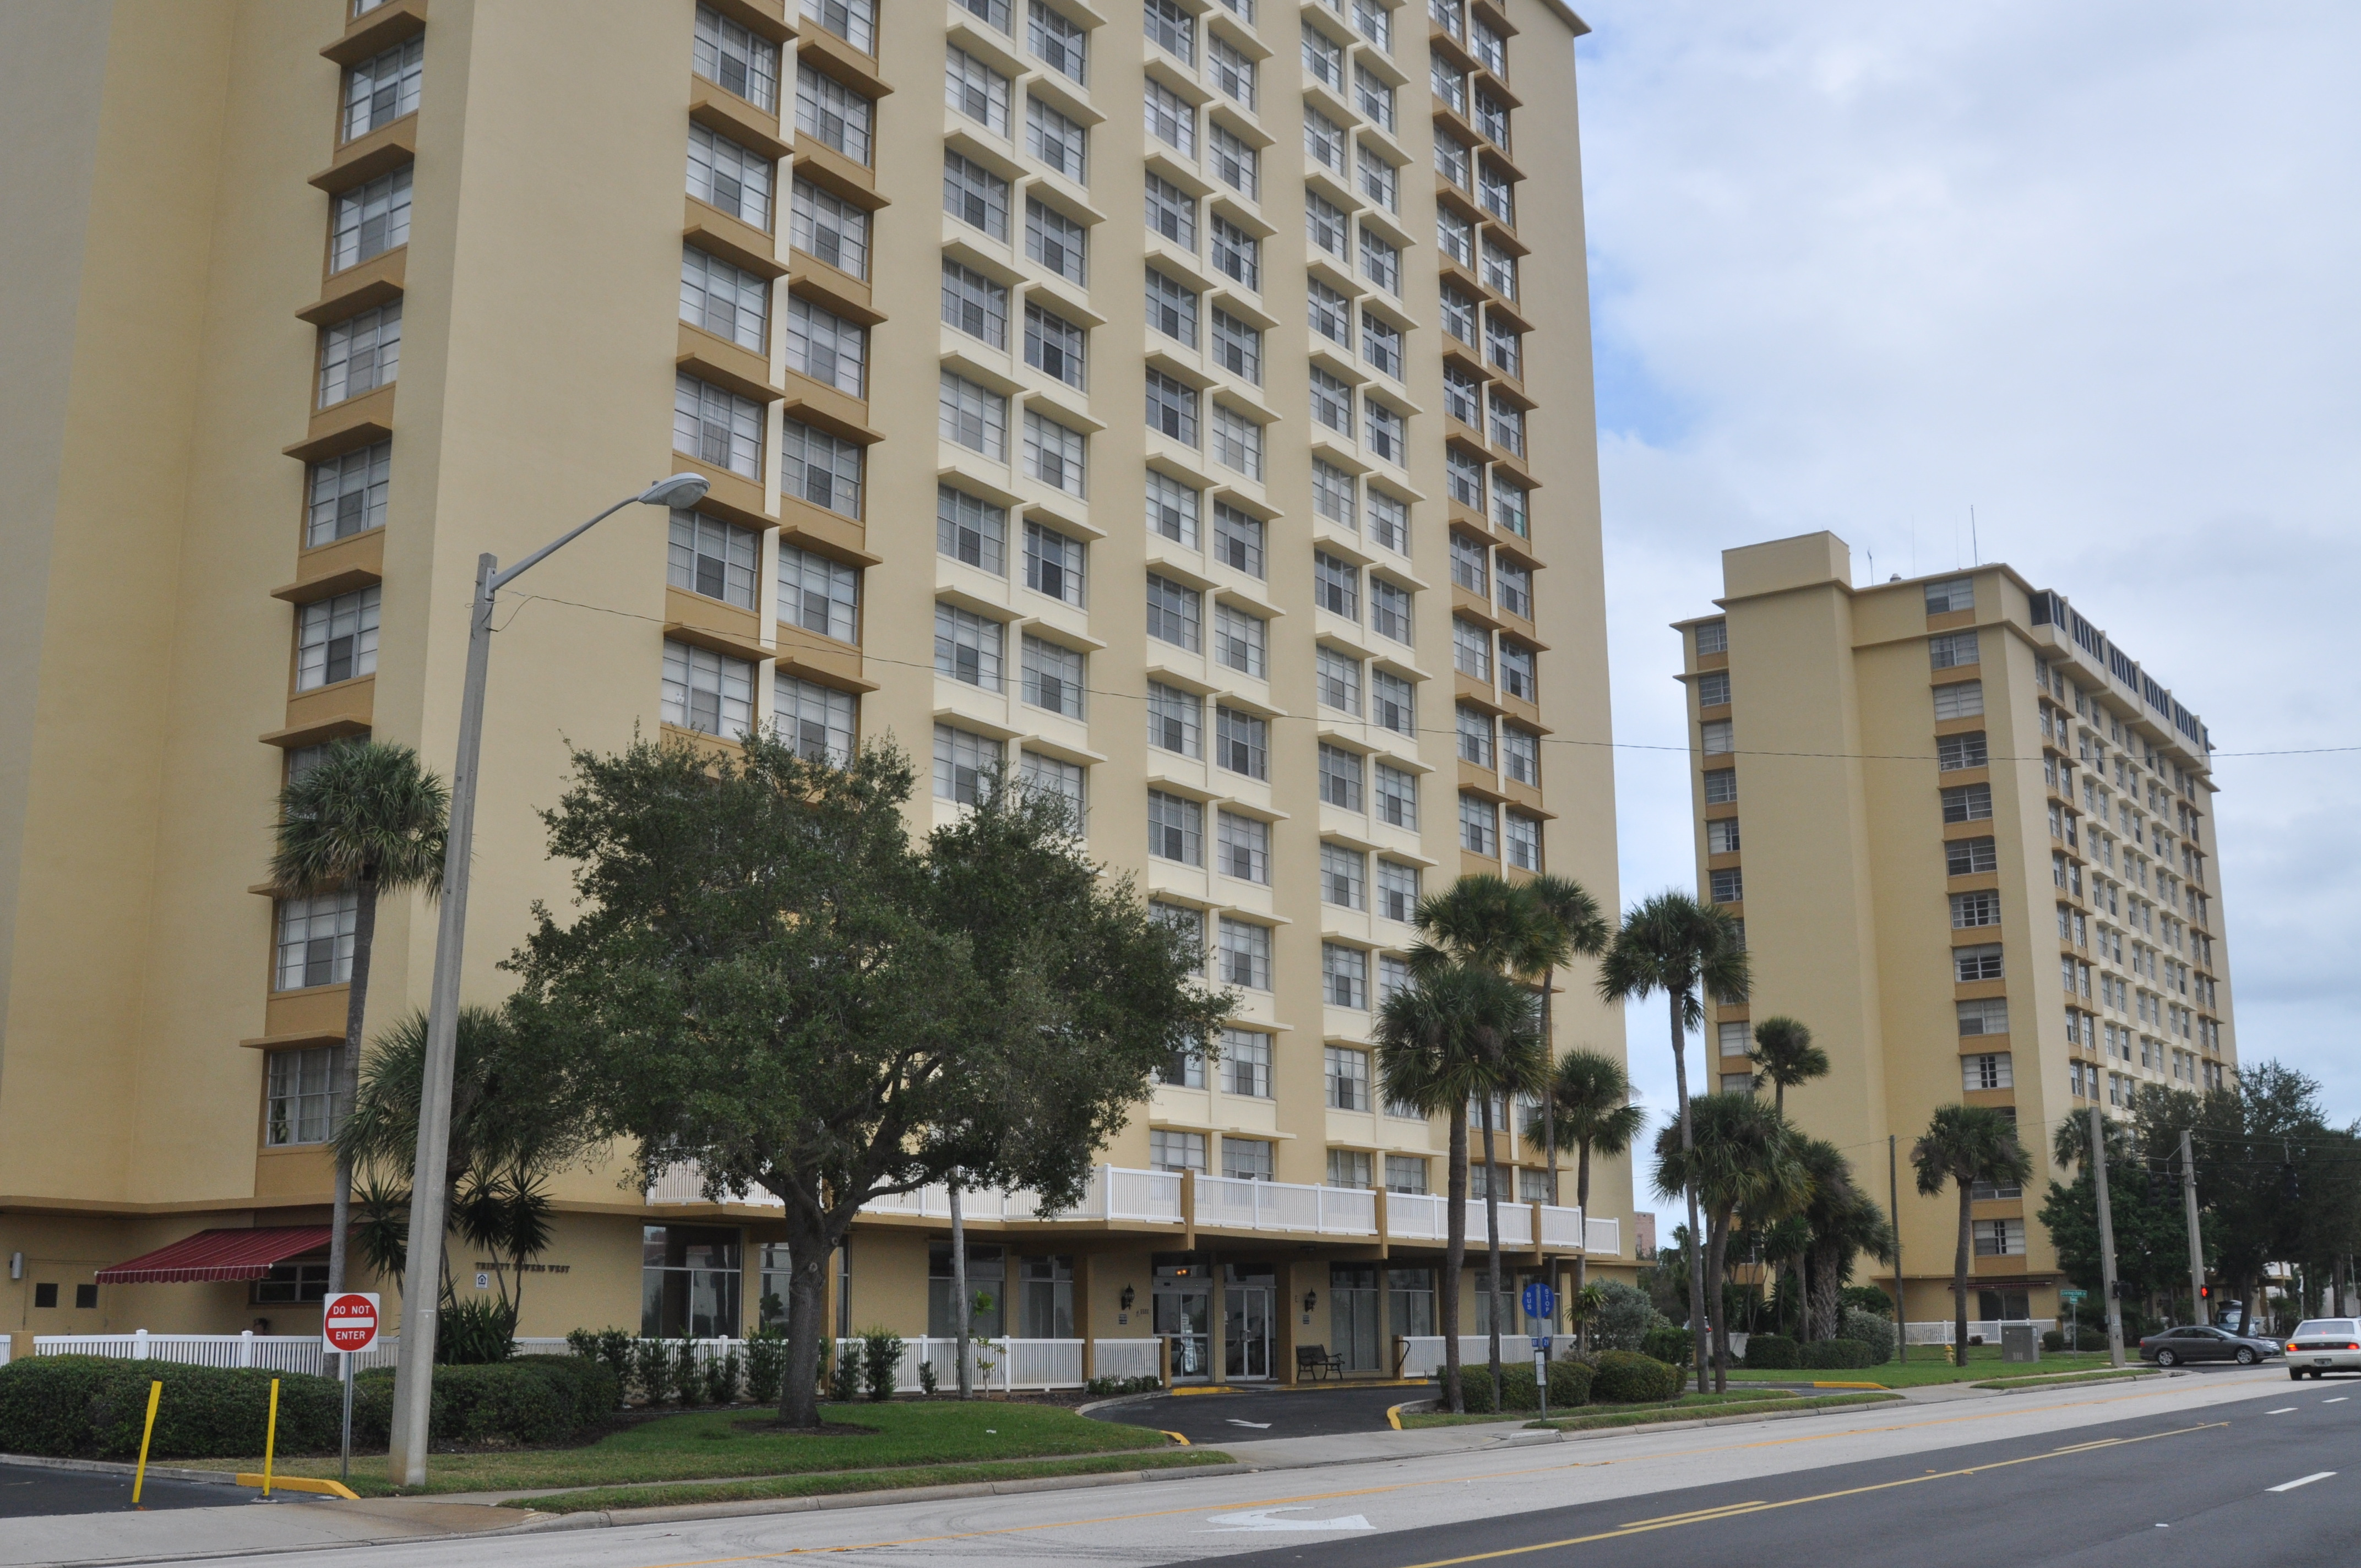 510 Units of Senior Affordable Housing in Melbourne, FLA Preserved by Nonprofit (Photo: Business Wire)